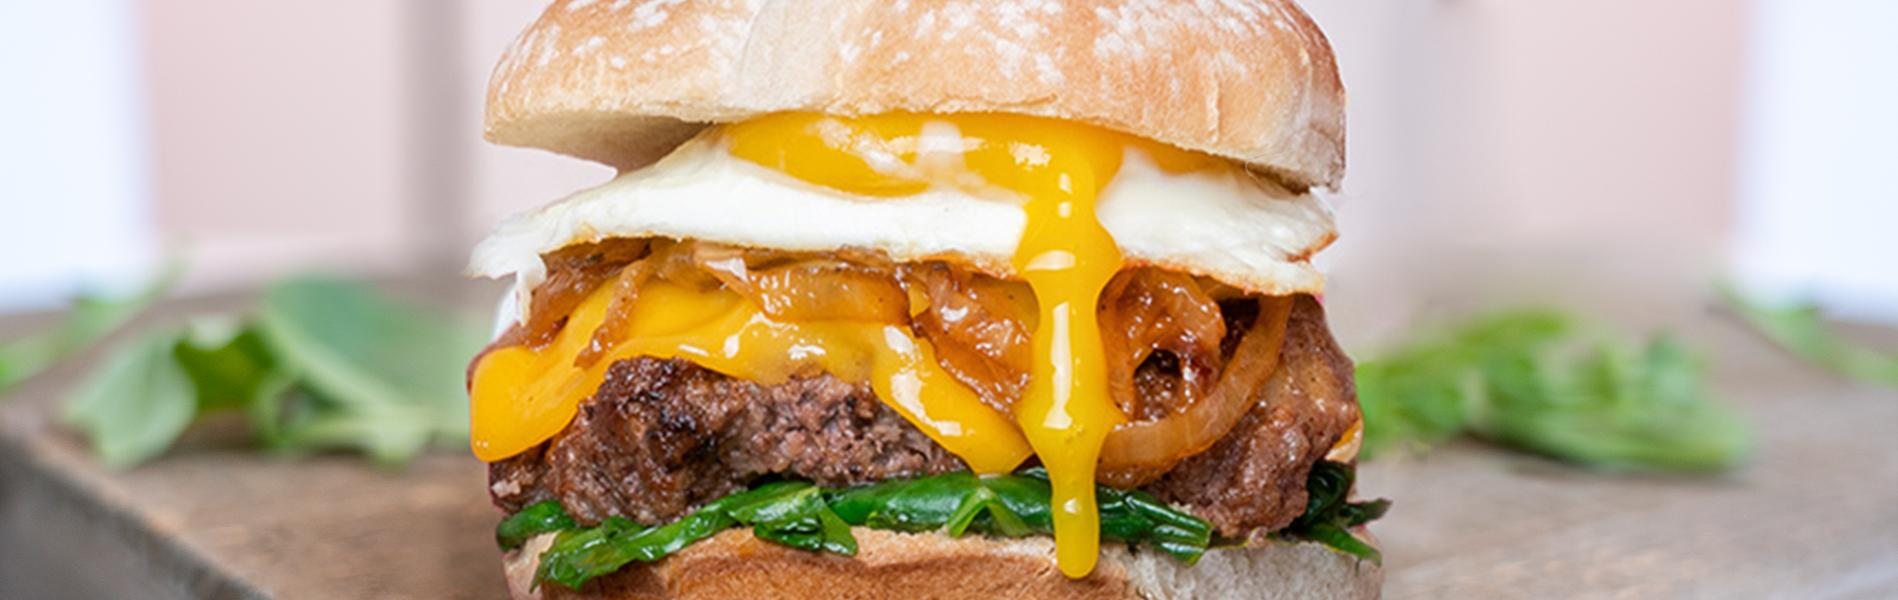 A burger with eggs, onions, cheese and spices